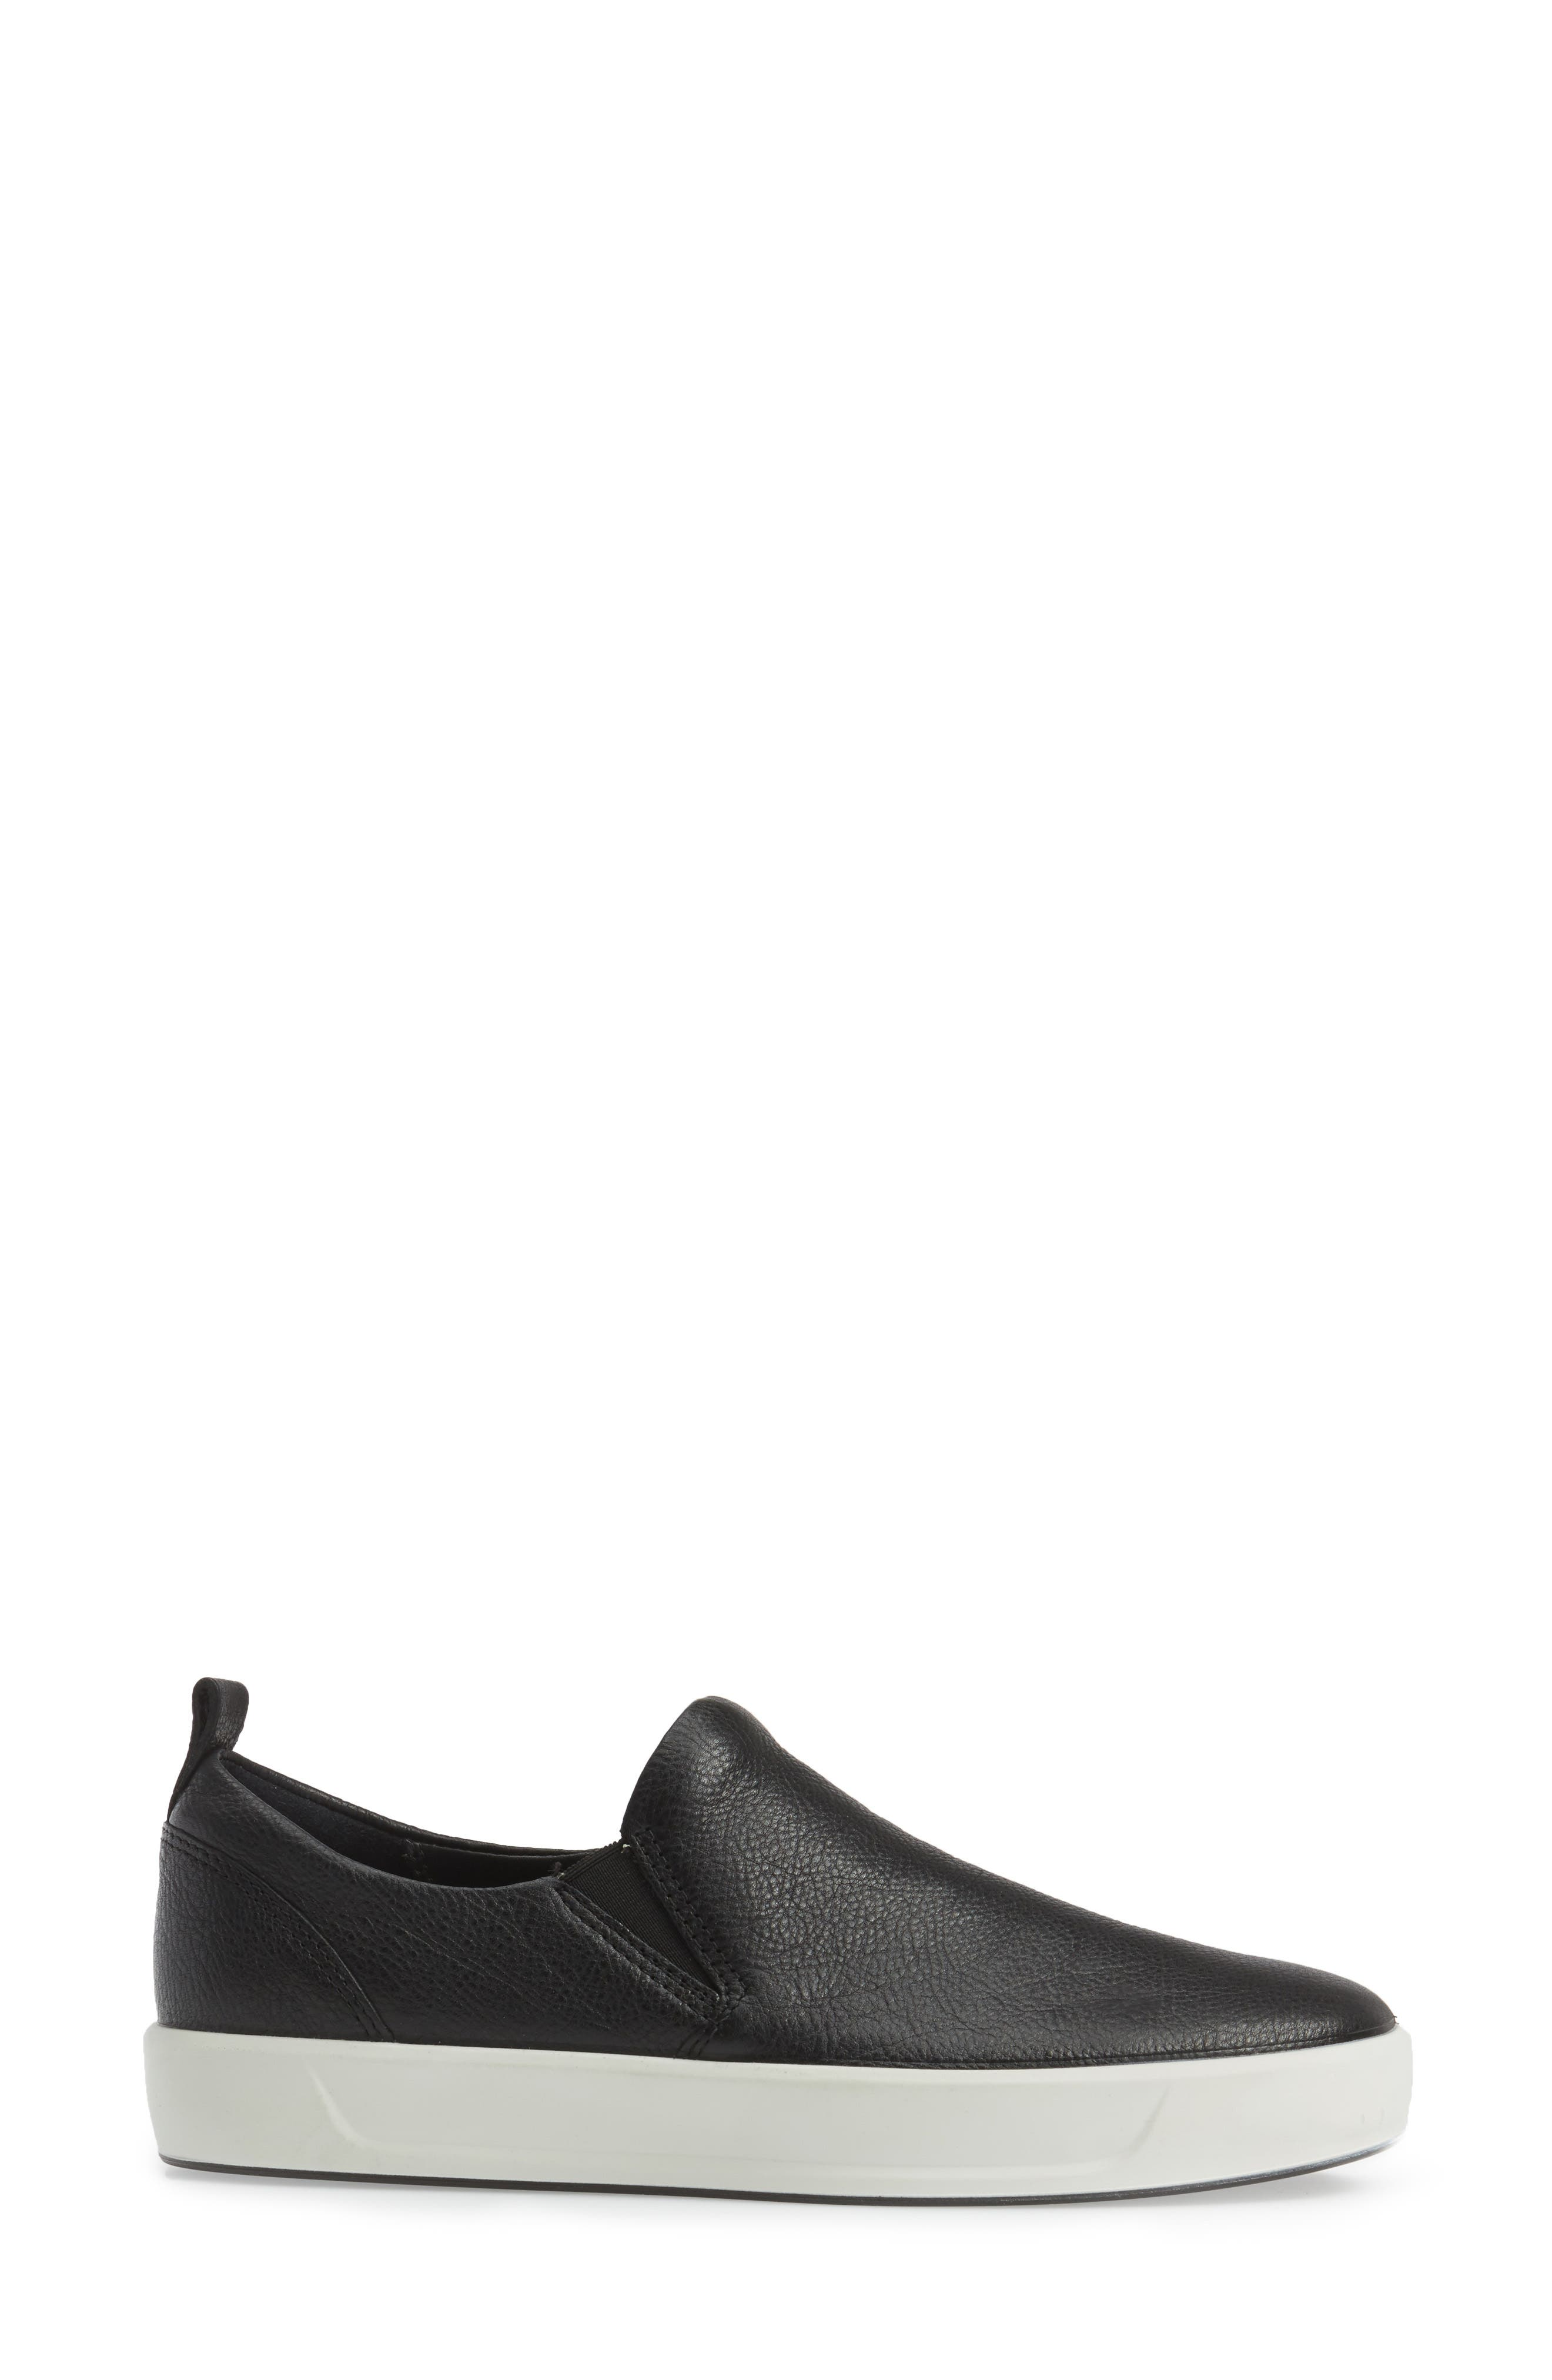 Alternate Image 3  - ECCO Soft 8 Slip-On Sneaker (Women)